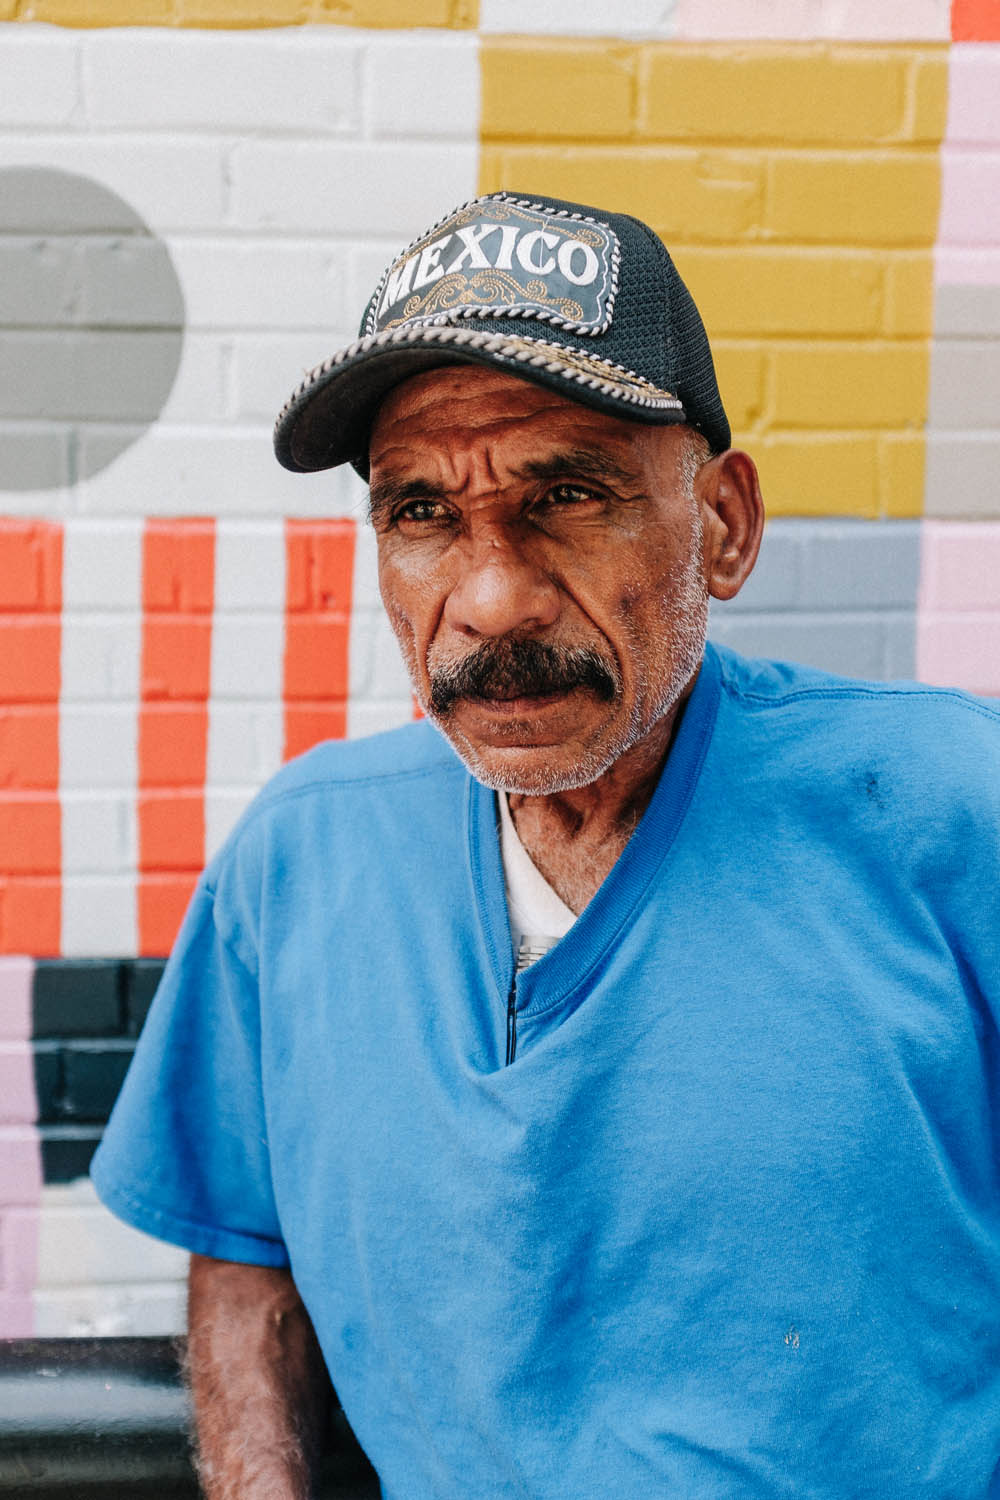 Portrait of a Man in Plaza District of Oklahoma City